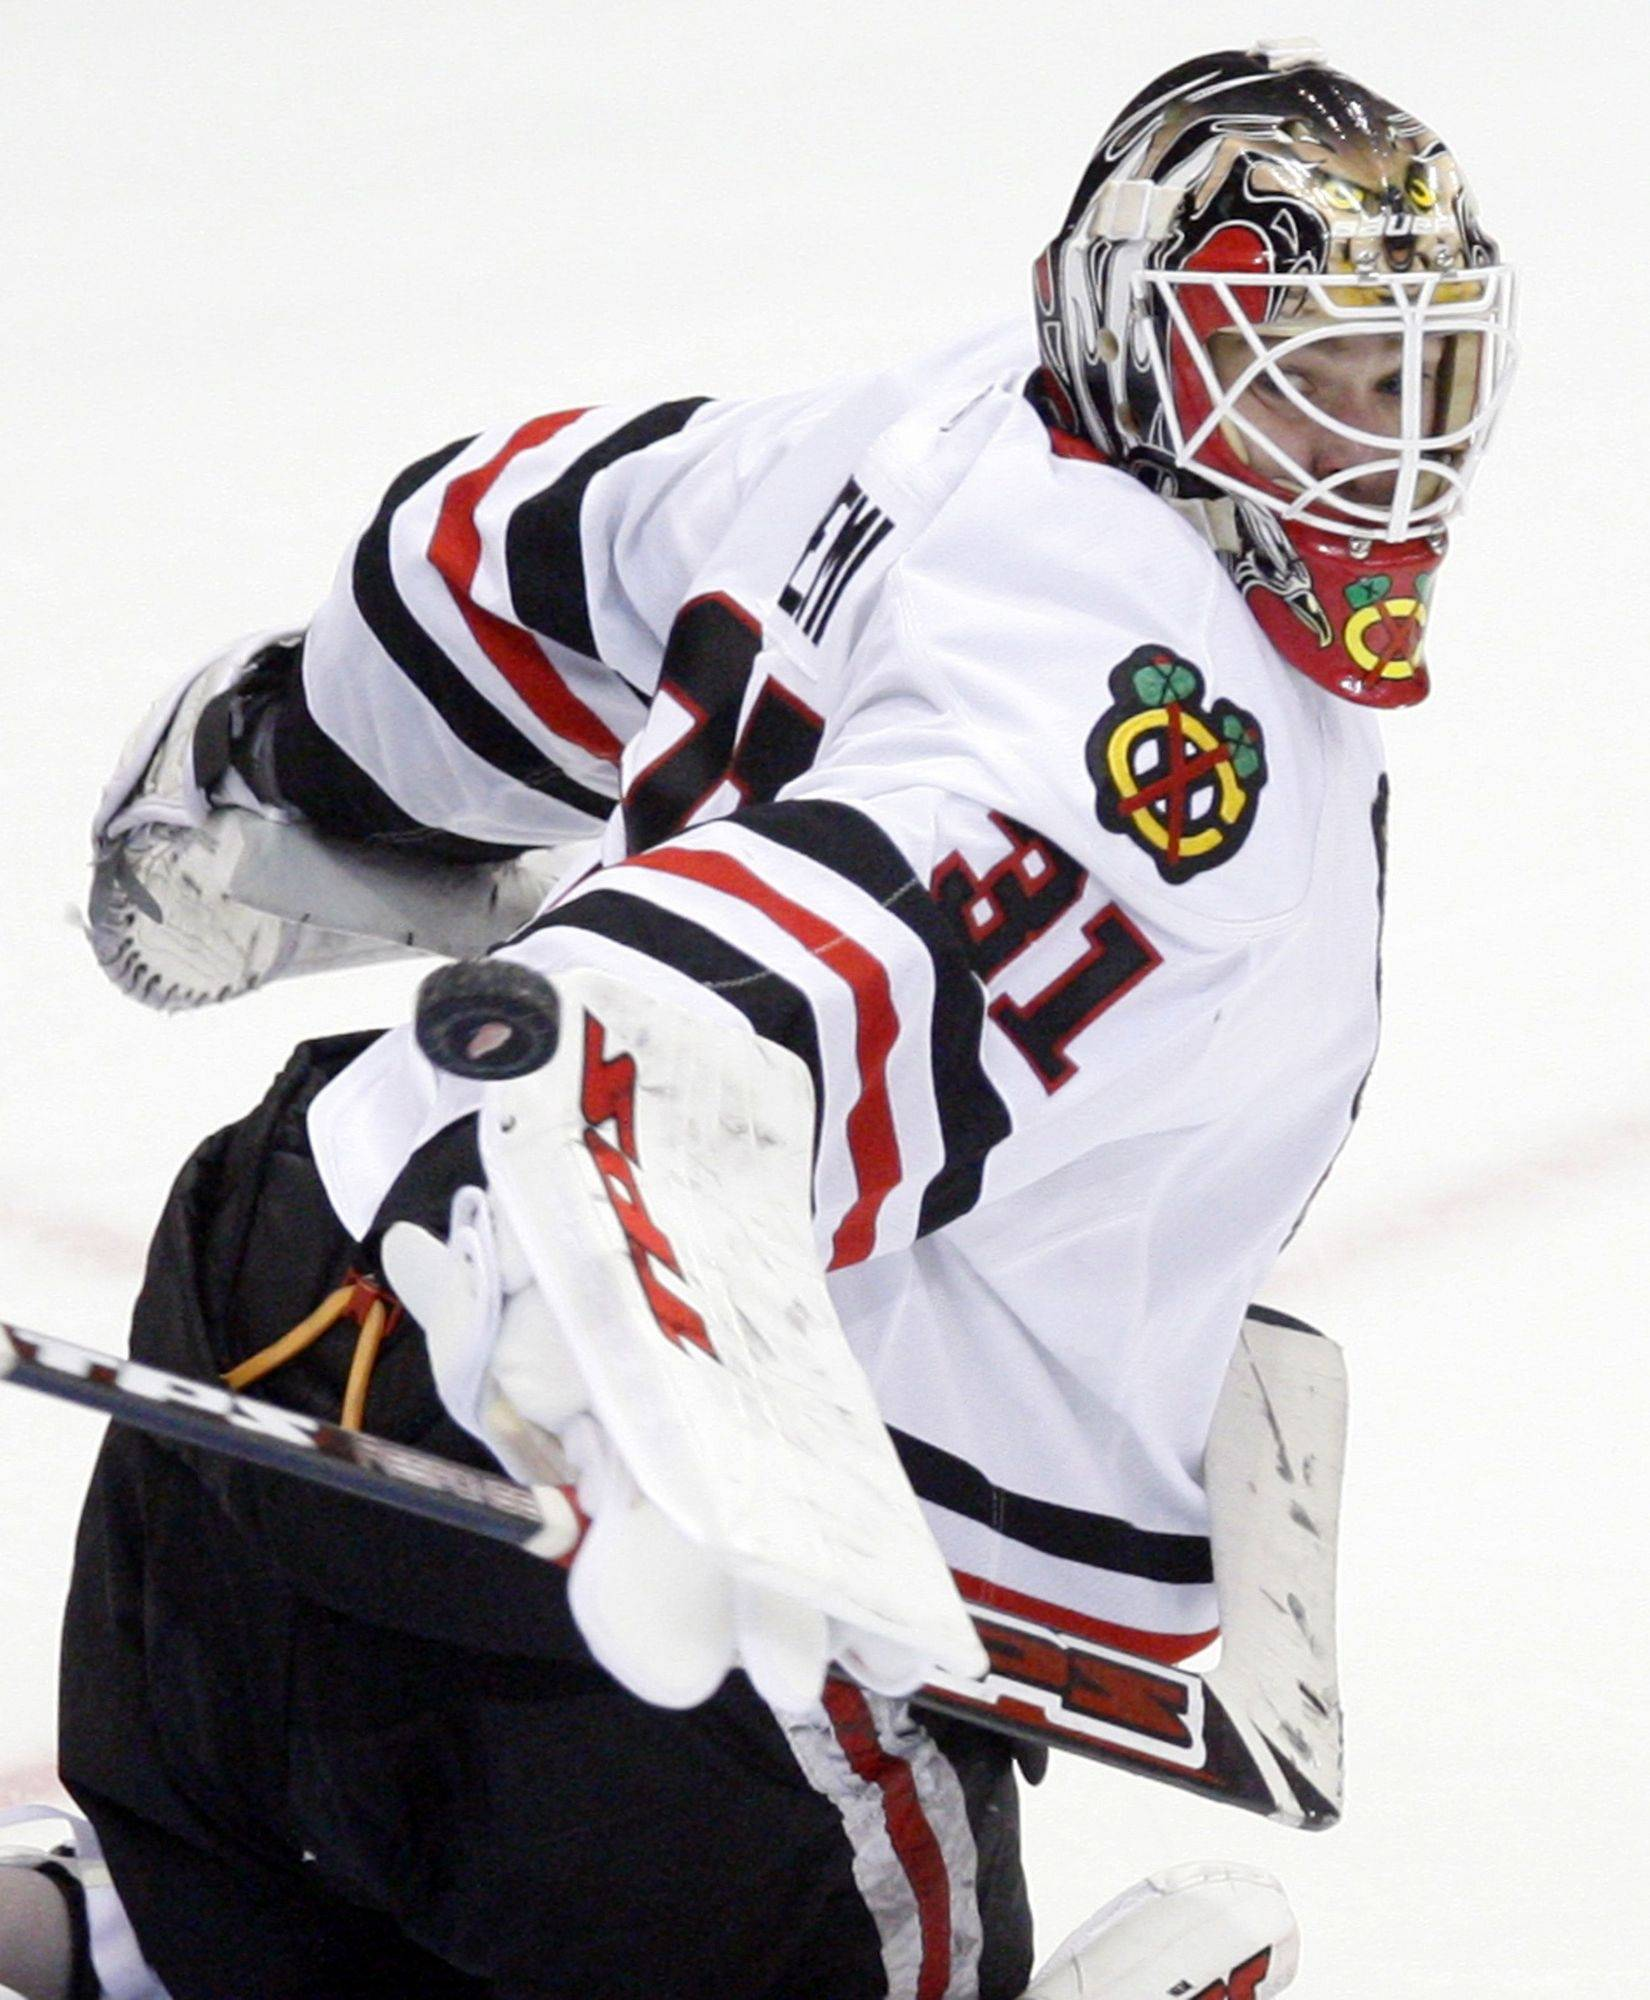 Blackhawks goalie Antti Niemi, improving his record to 12-3-1, blocks a shot during Sunday's shootout at Detroit.